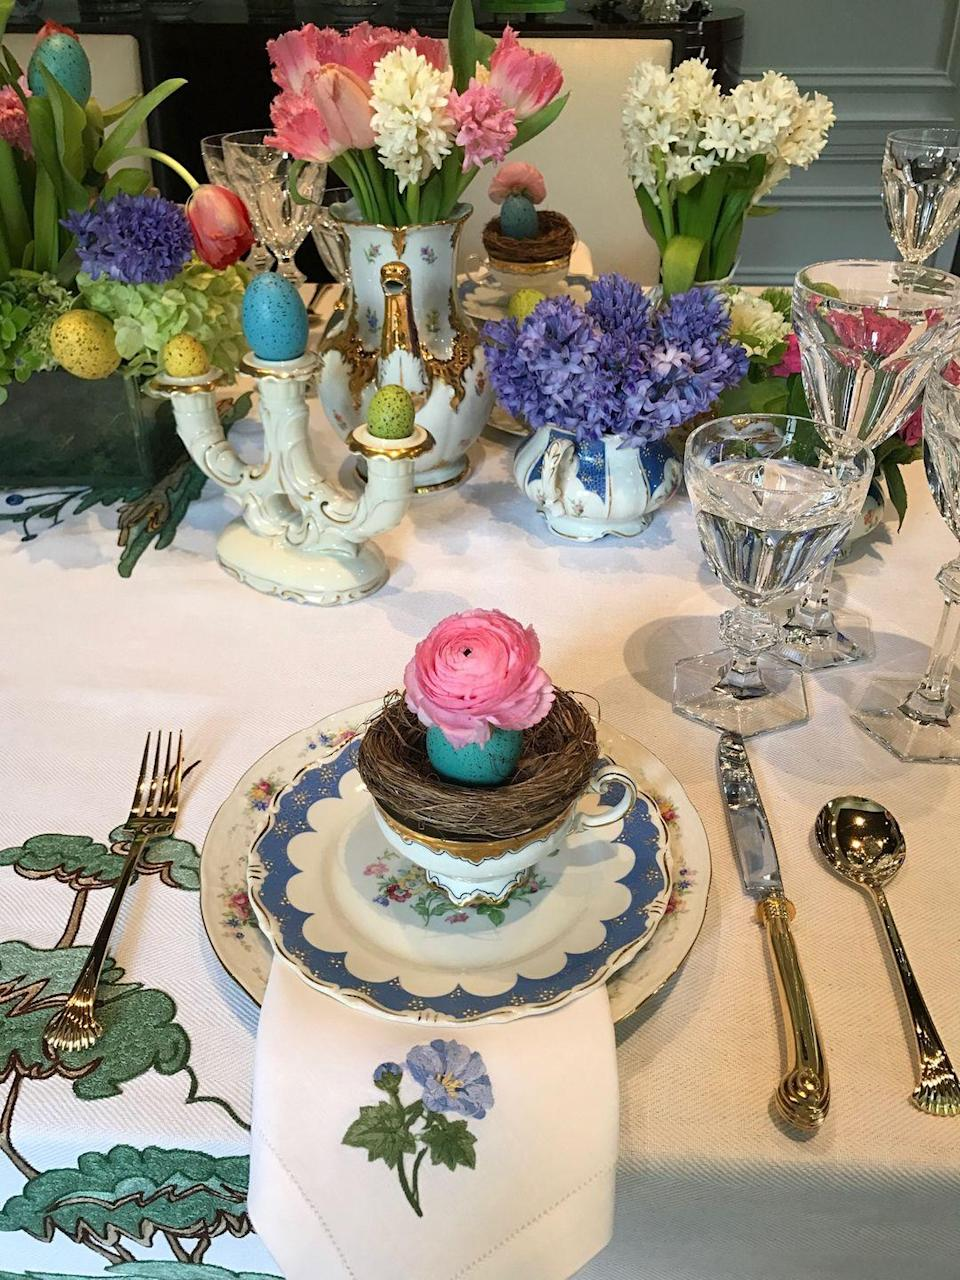 """<p>""""Bring beautiful spring scenery indoors with decorative birds' nests. You can set them inside tea cups with tiny decorative eggs on top of the nests, this was really a hit at my last Easter gathering. Here you can get creative and mix and match or just stick to a color palette. Try mixing and matching tea cups, creamer and sugar bowls and teapots instead of vases and display gorgeous spring floral arrangements to brighten up your table!"""" <em>—<a href=""""https://www.thetot.com/mama/being-mama-nasiba-adilova/"""" rel=""""nofollow noopener"""" target=""""_blank"""" data-ylk=""""slk:Nasiba Adilova"""" class=""""link rapid-noclick-resp"""">Nasiba Adilova</a>, Founder, The Tot</em></p>"""